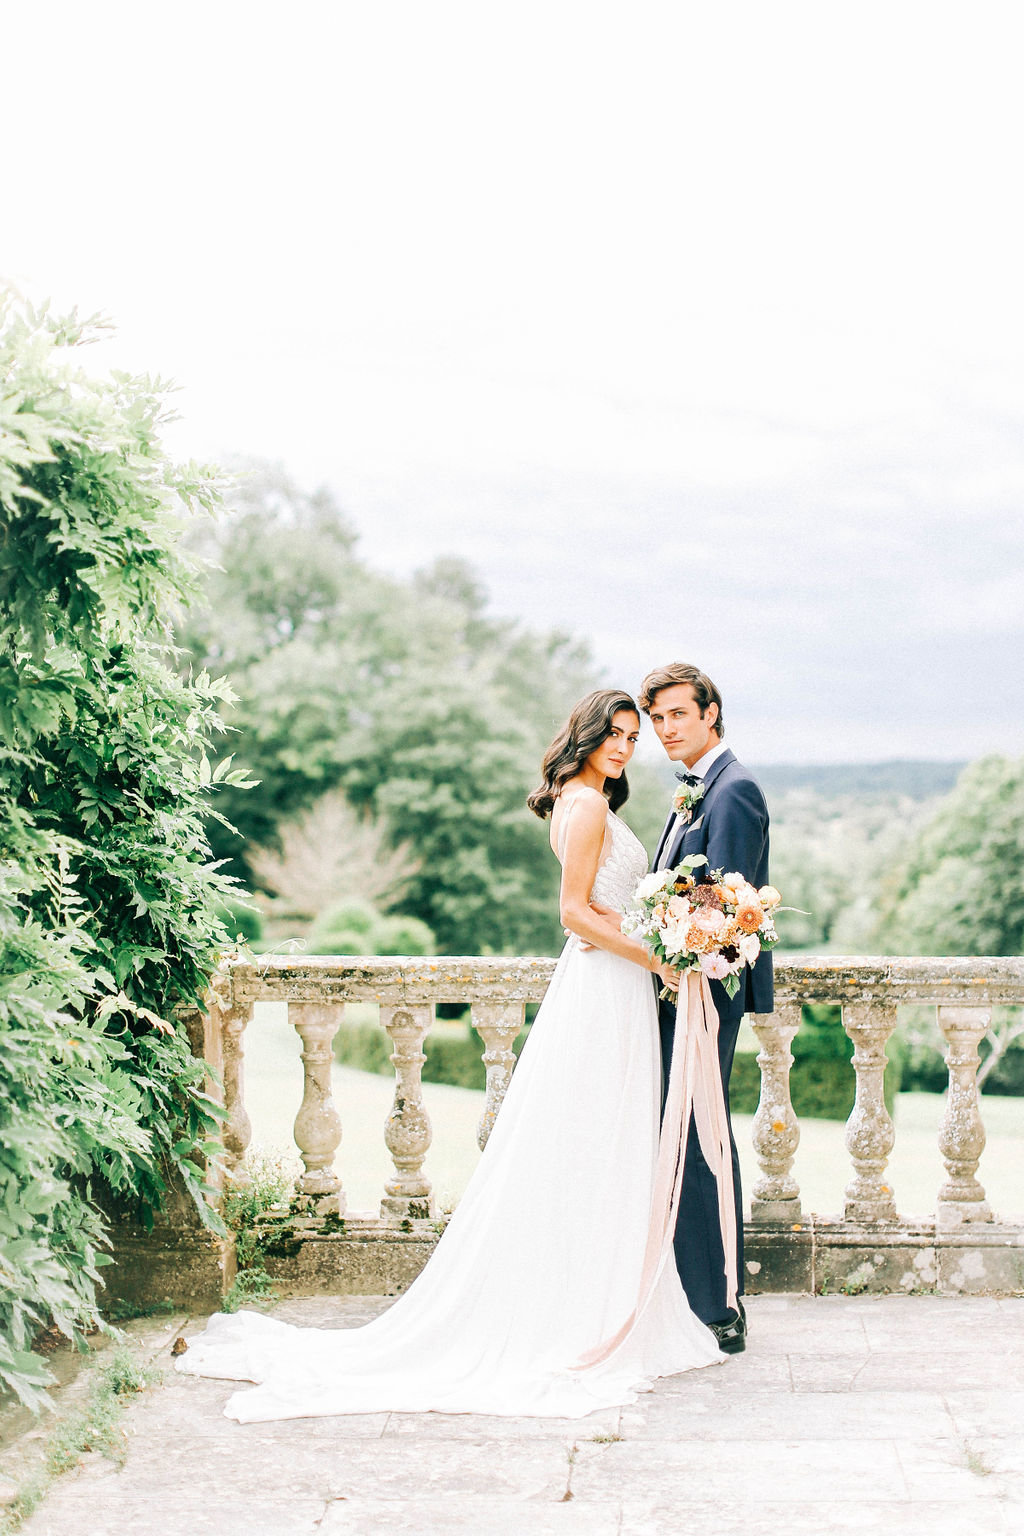 Classic, Romantic Wedding Inspiration in Hampshire, UK